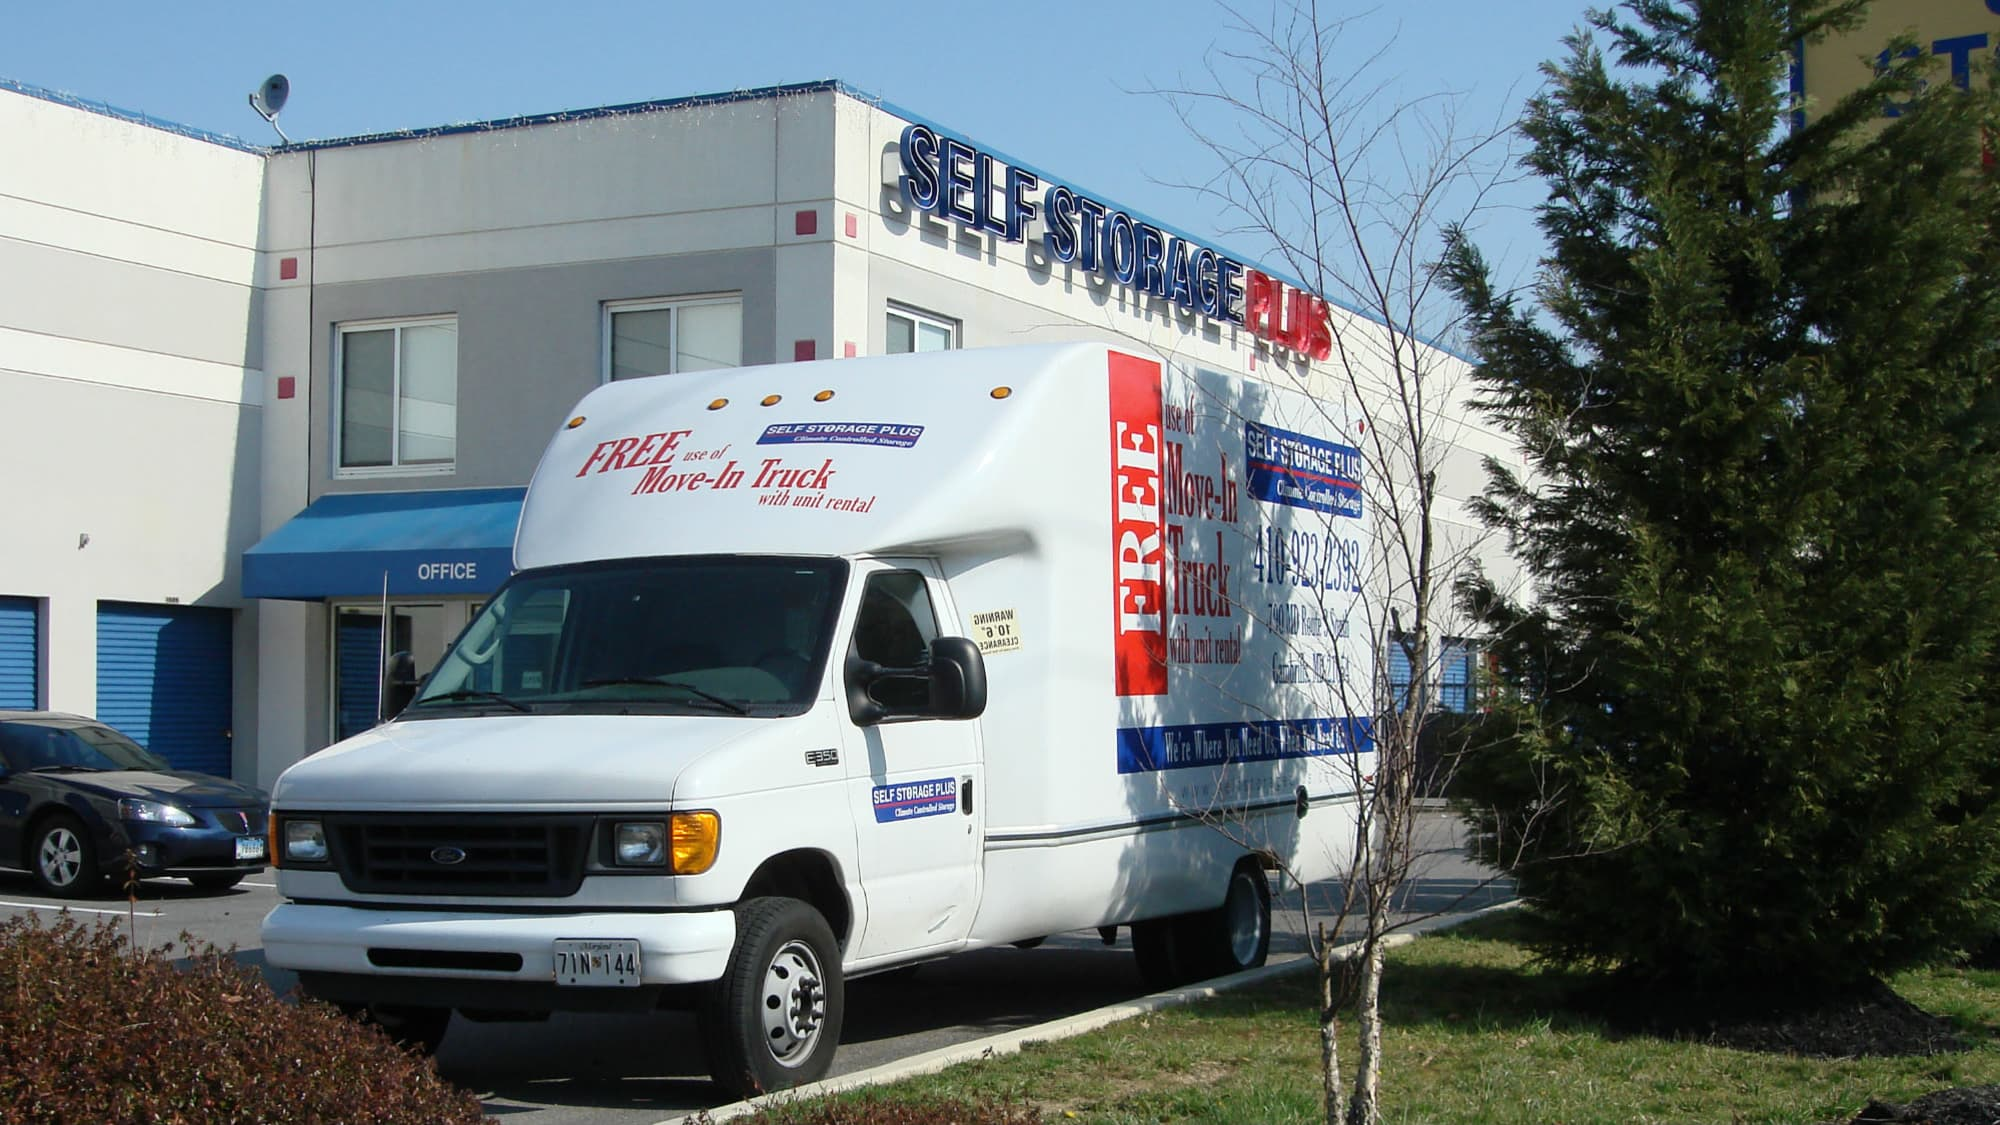 Moving truck available at Self Storage Plus in Gambrills, MD